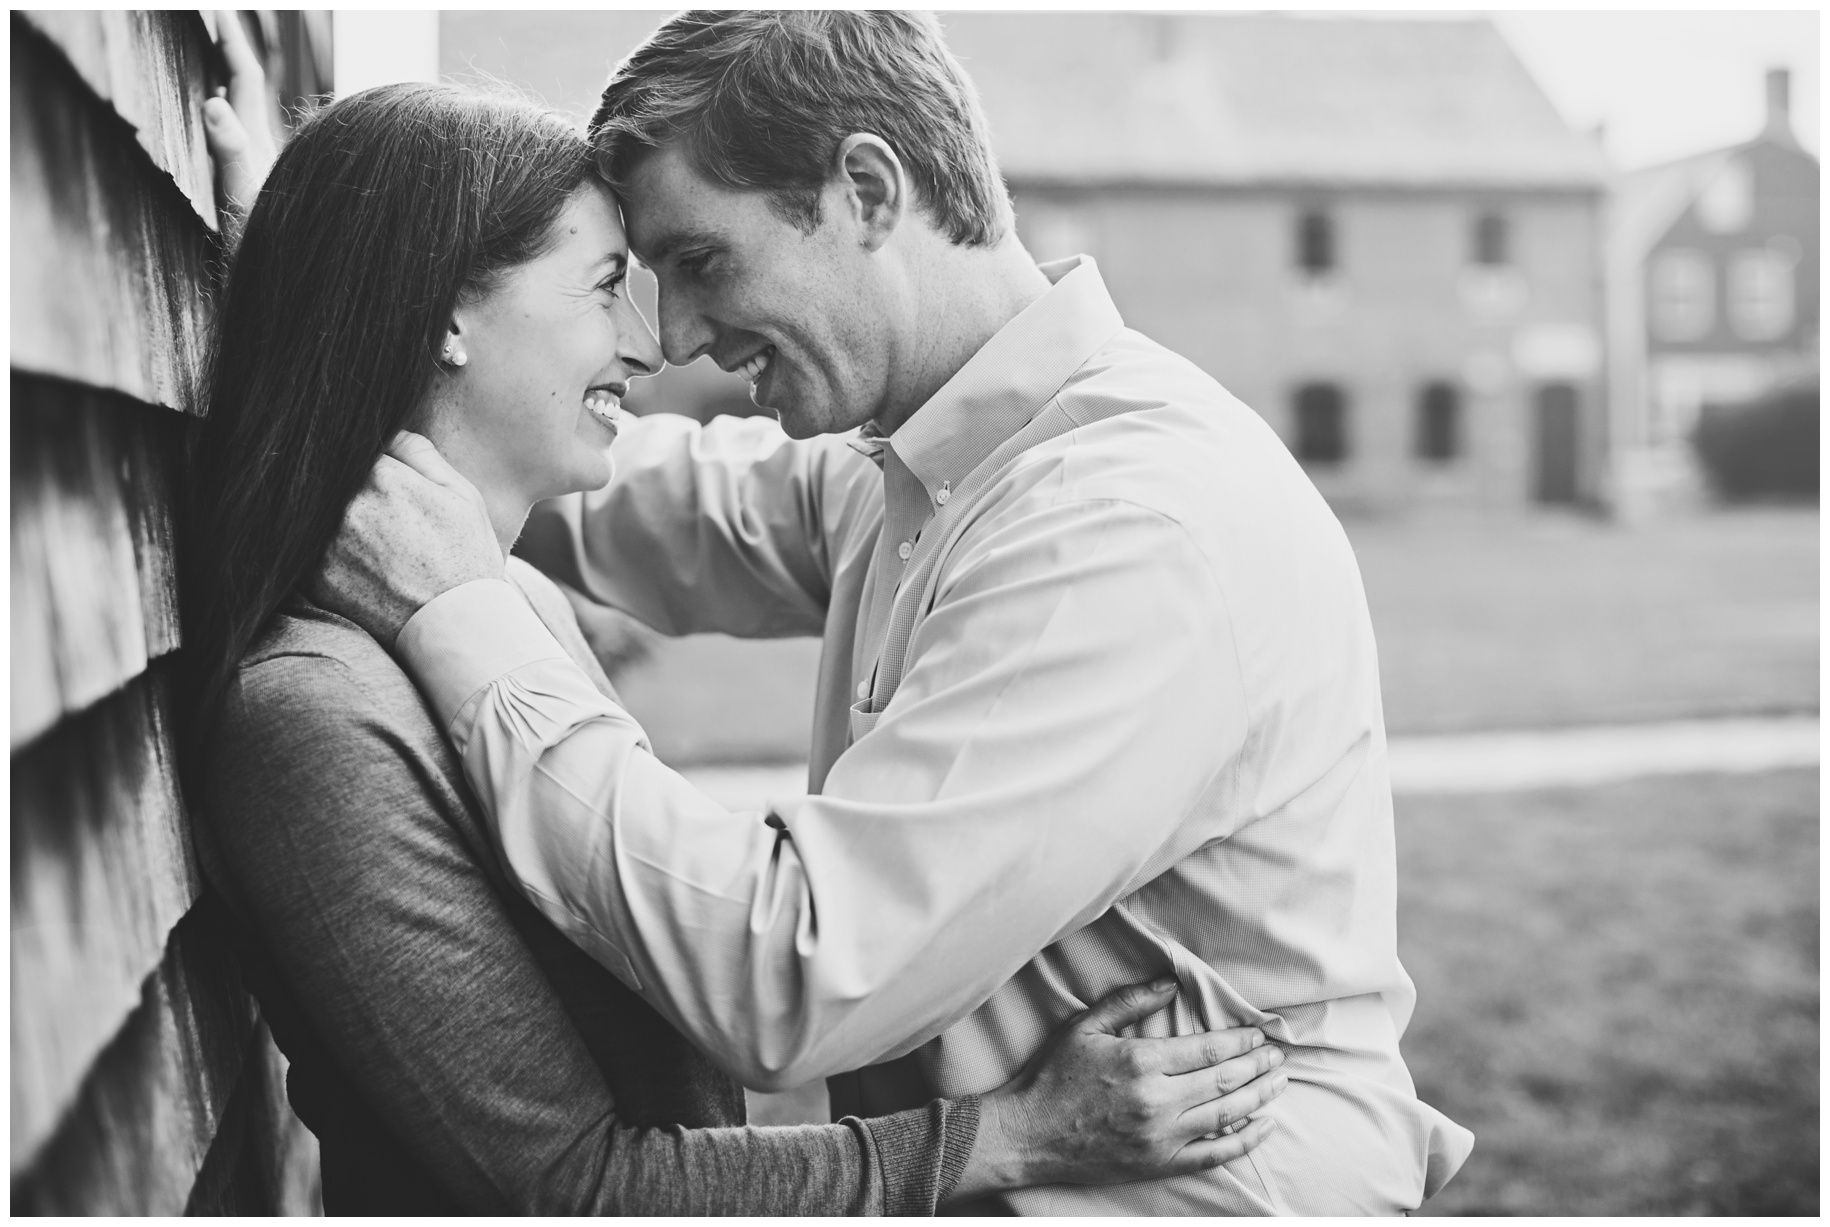 maineweddingphotographer_portsmouth_engagements_newhampshire_newengland-002